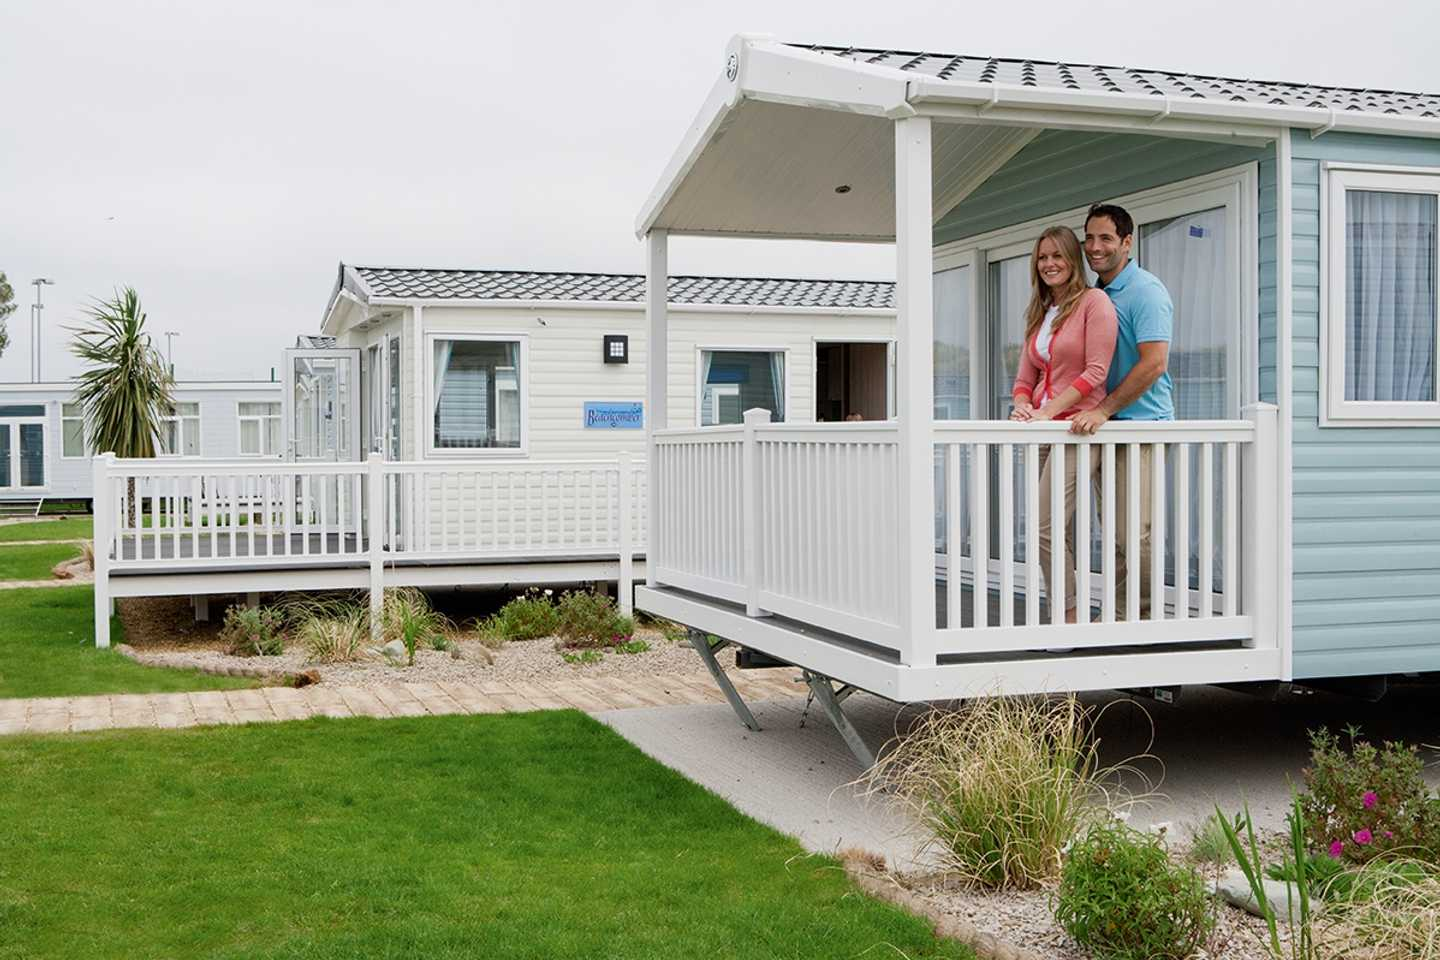 Owner standing on their veranda of their holiday home at Presthaven